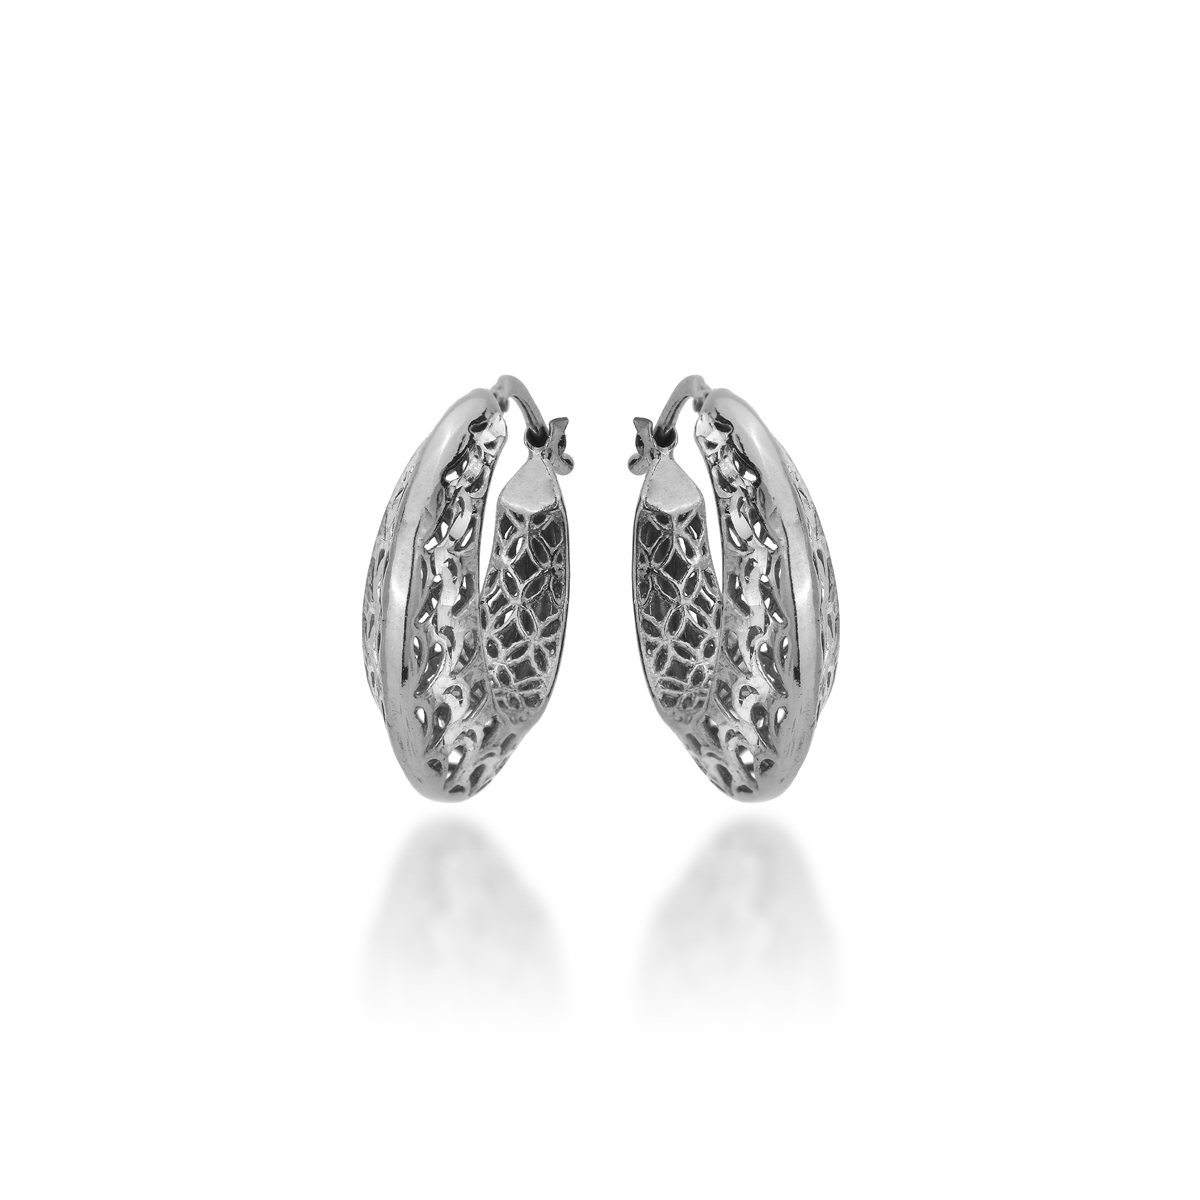 rhodium-plated gold Silver Earrings